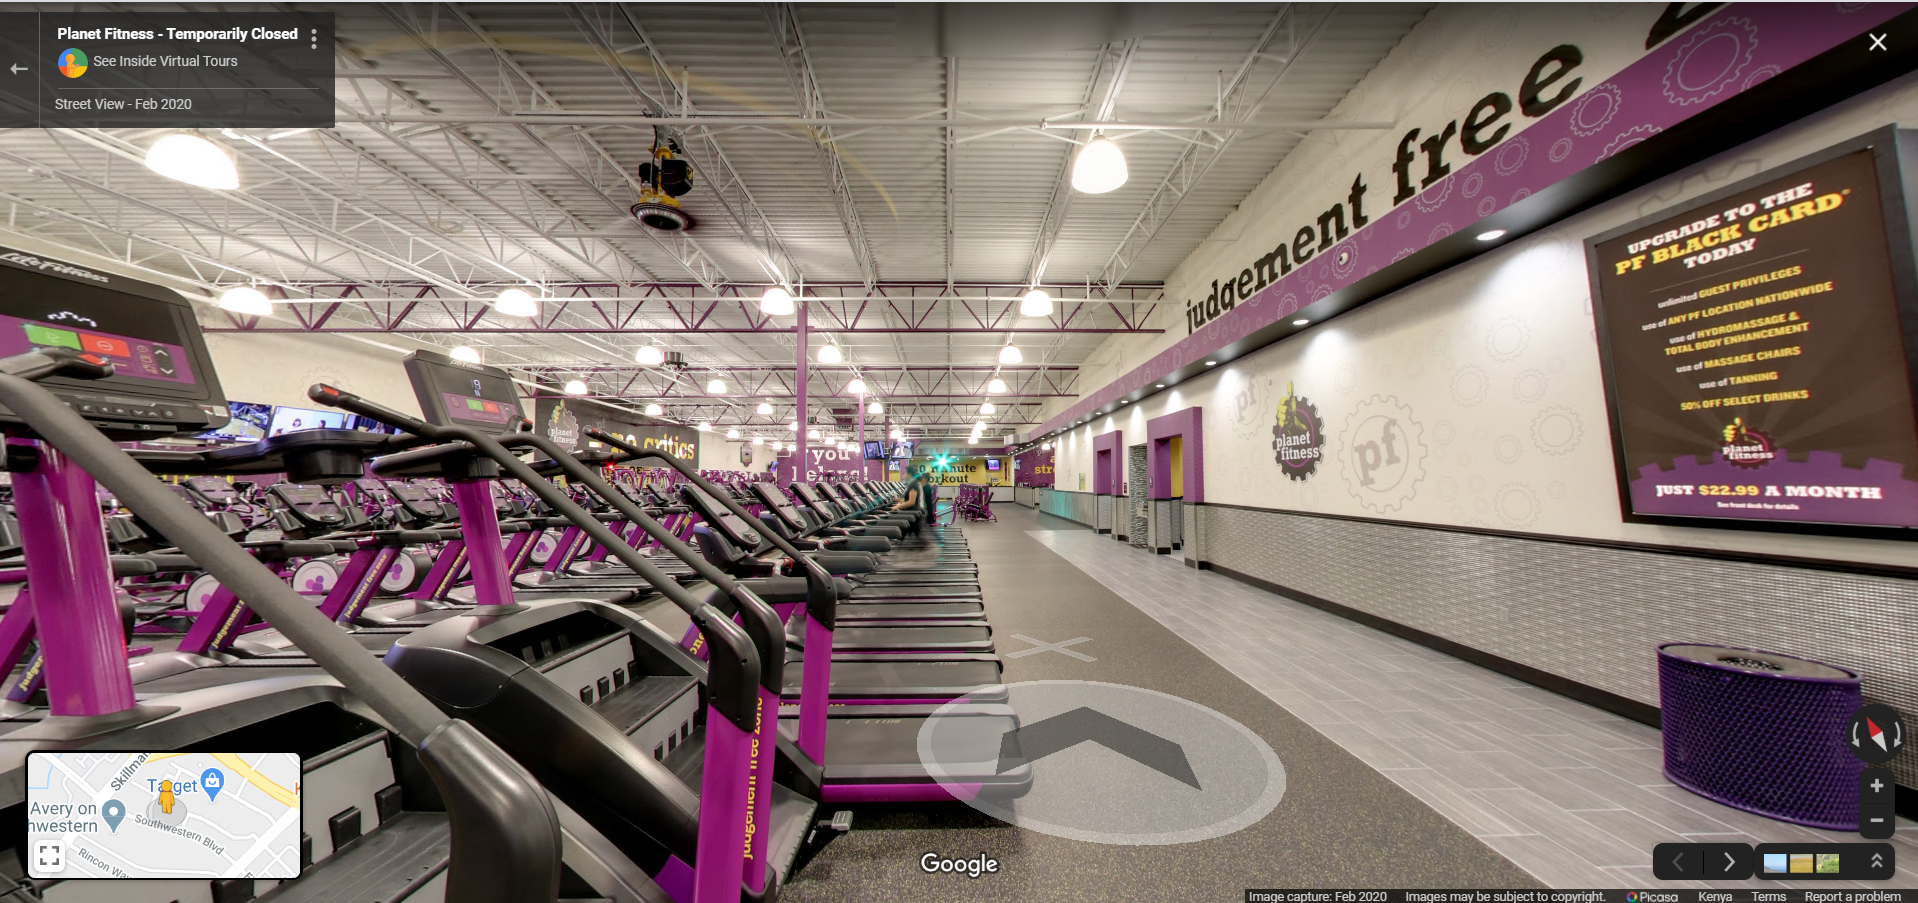 Planet Fitness - (Skillman) Dallas